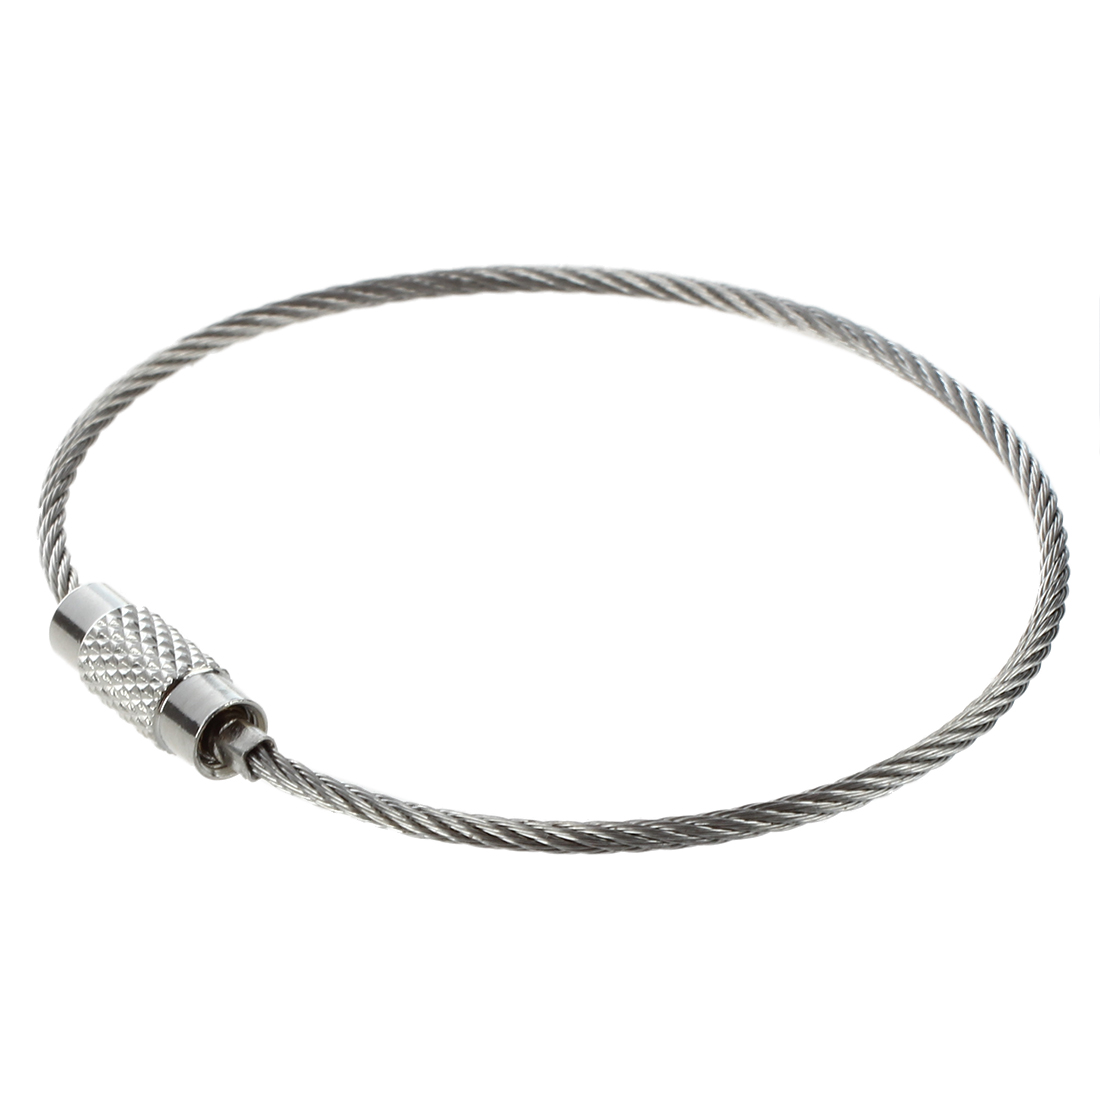 Stainless Steel Lock Wire : Stainless steel screw locking wire keychain cable